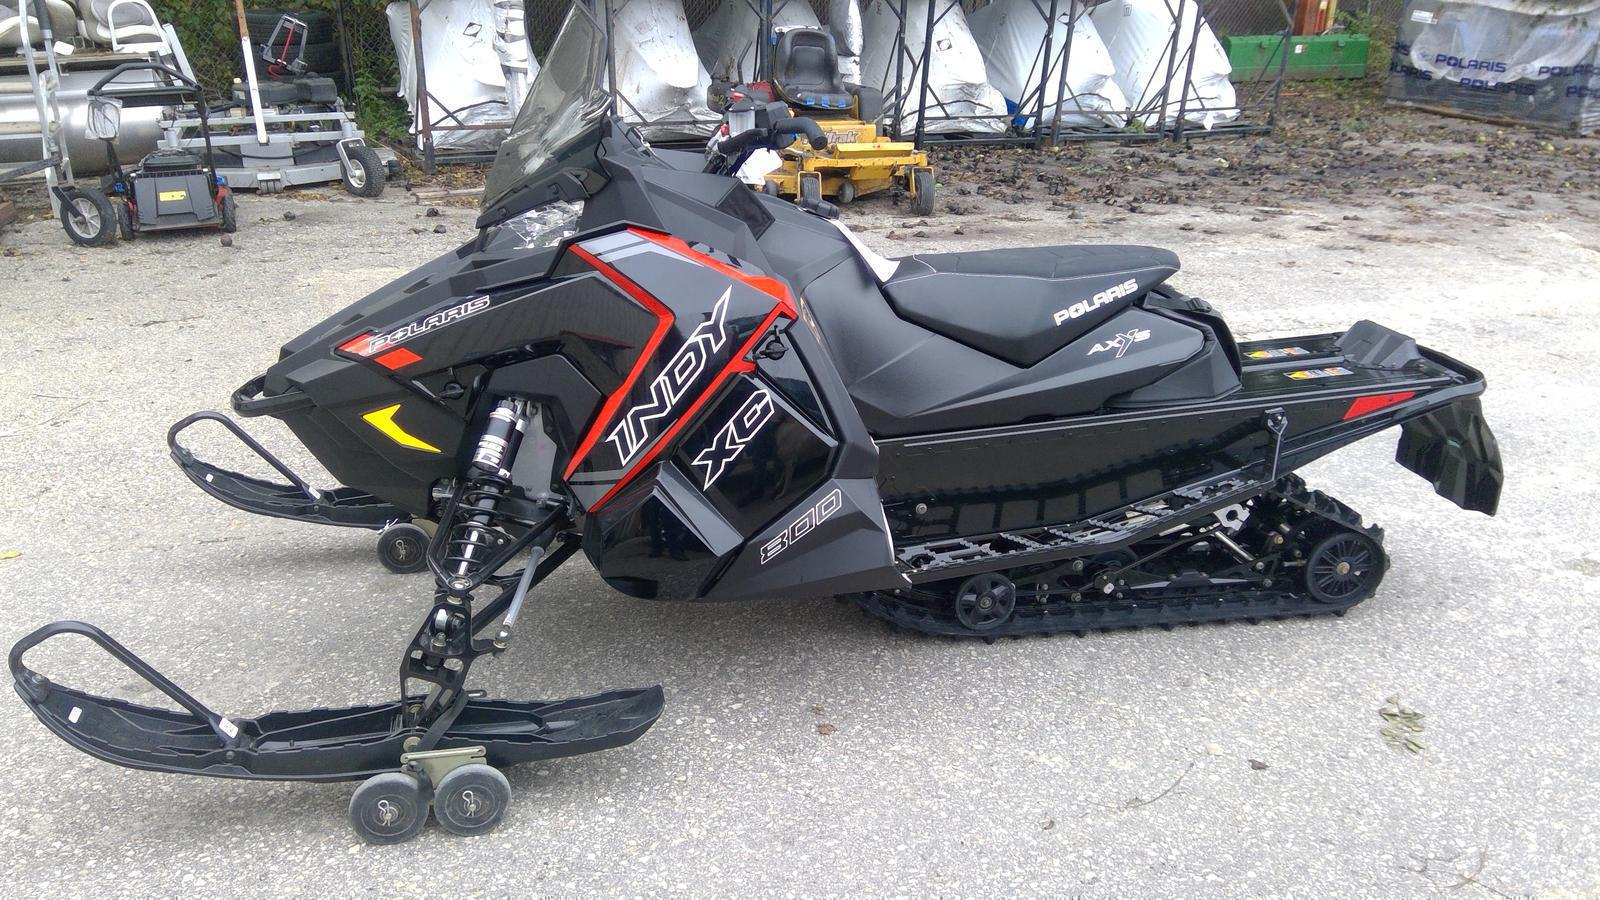 2019 Polaris Industries 800 Indy Xc 129 Es Black Red With Polar Boat Wiring Harness Win 20180907 17 05 15 Pro 37 06